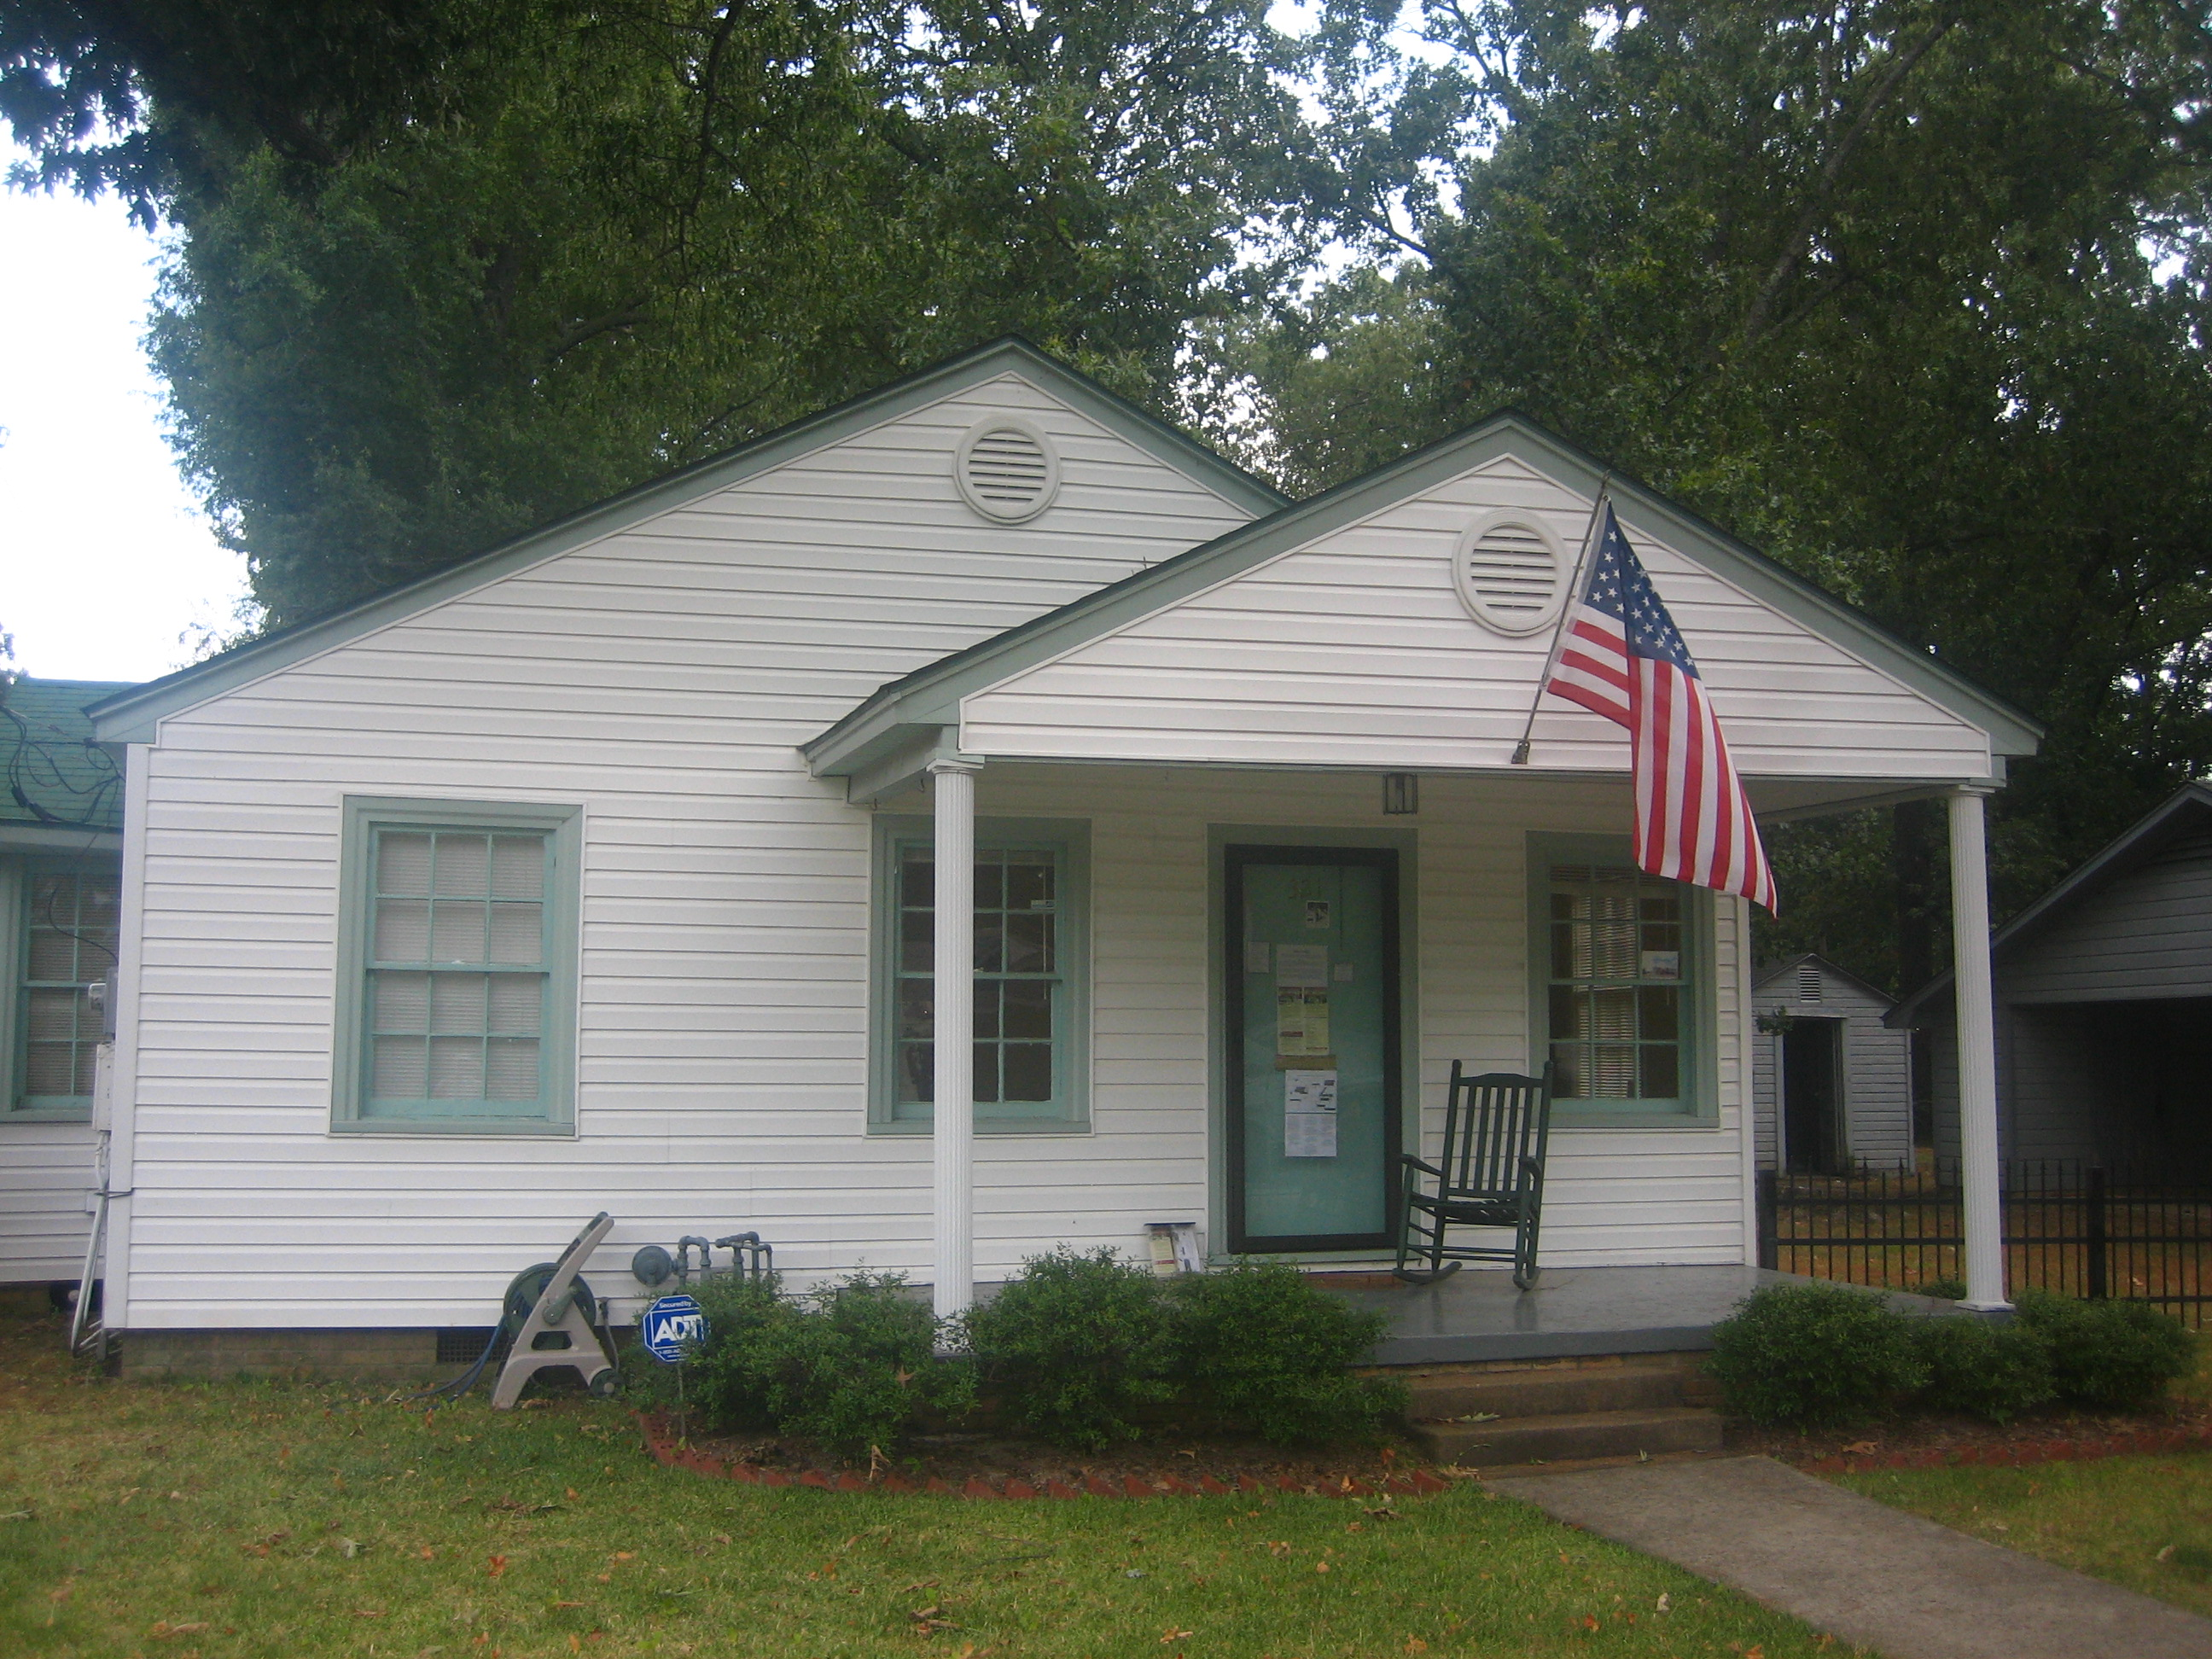 File:Bill Clinton Boyhood Home in Hope, Arkansas IMG 1515 ...